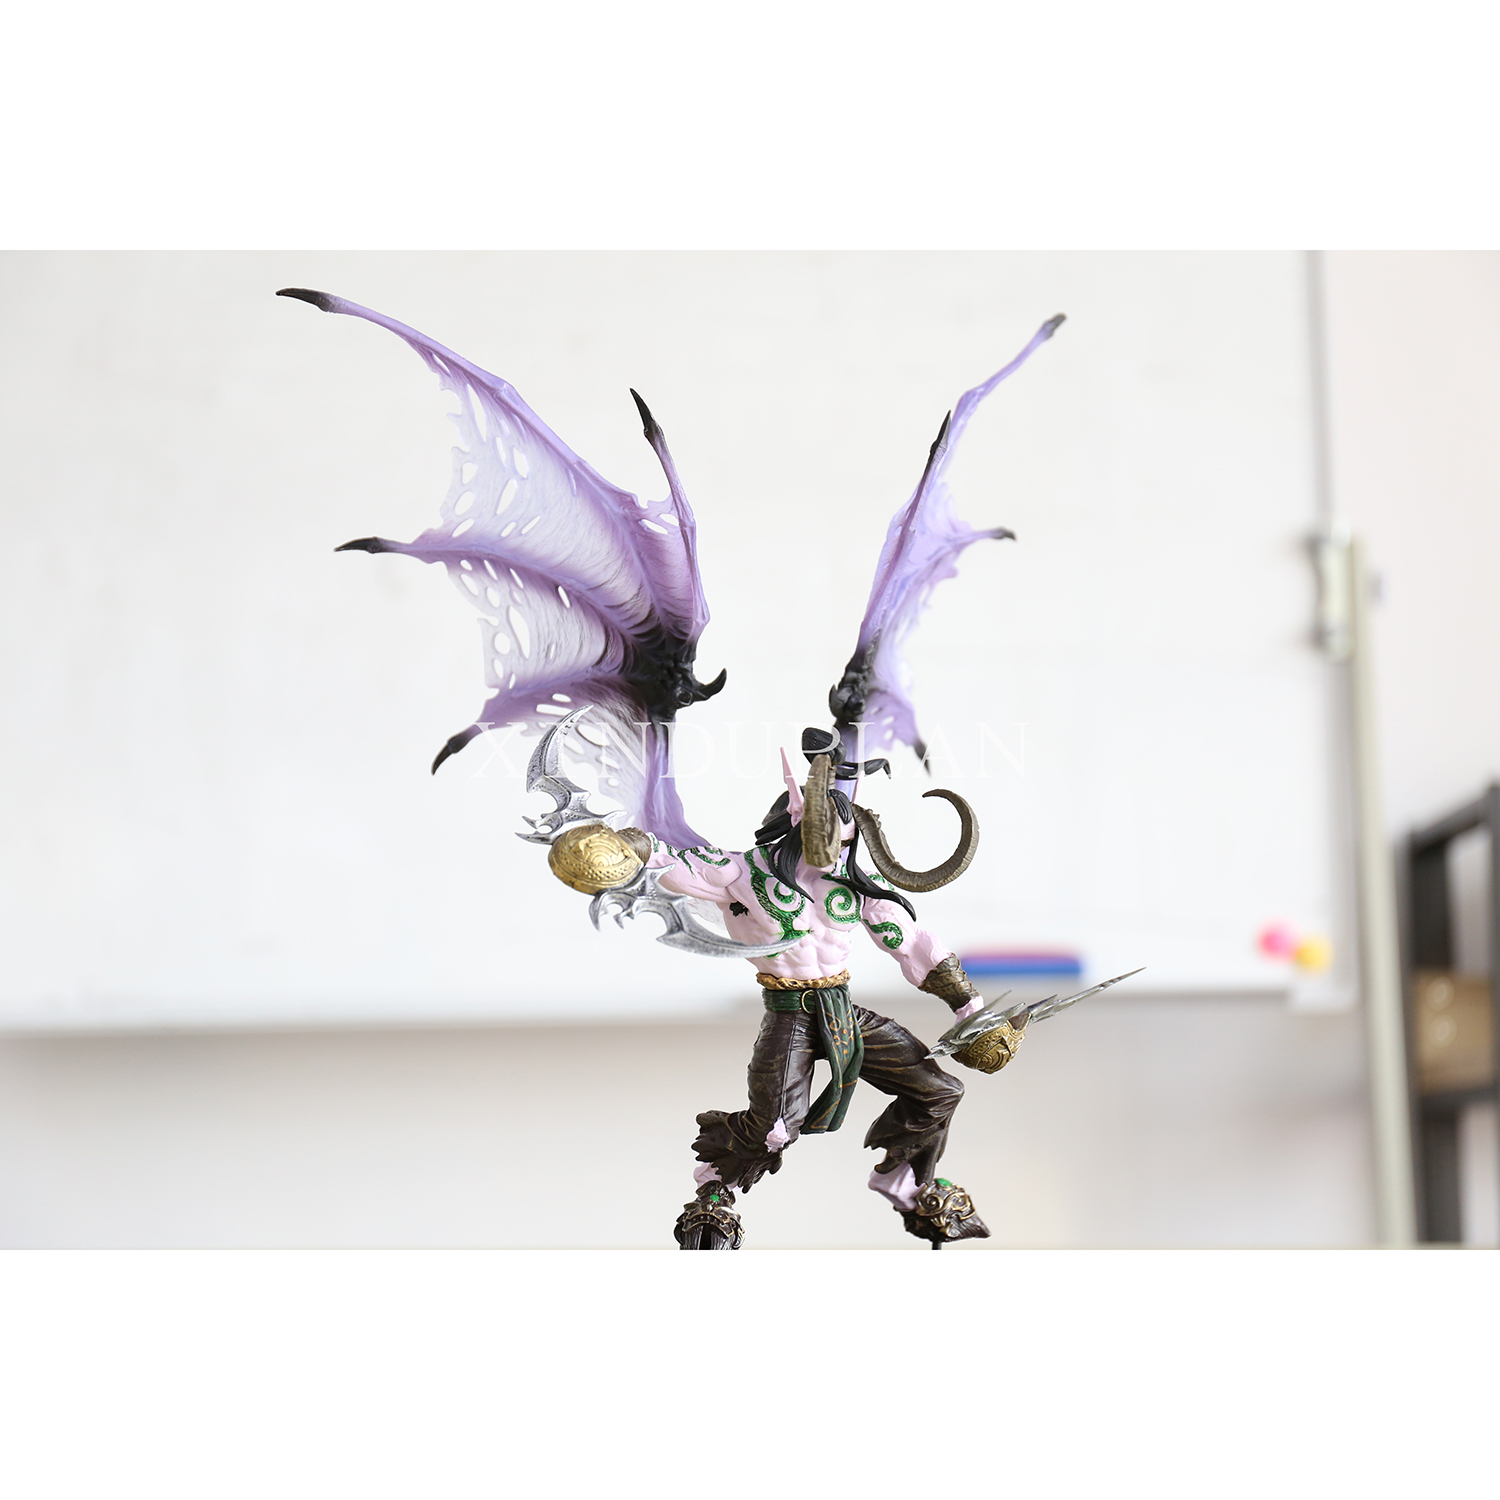 XINDUPLAN NEW Dota 2 DC Illidan Stormrage Demon Horde Game Action Figure Toys Cartoon Game Kids PVC Kids Collection Model 0327 street fighter v chun li bigboystoys with light action figure game toys pvc action figure collection model toys kids for gift